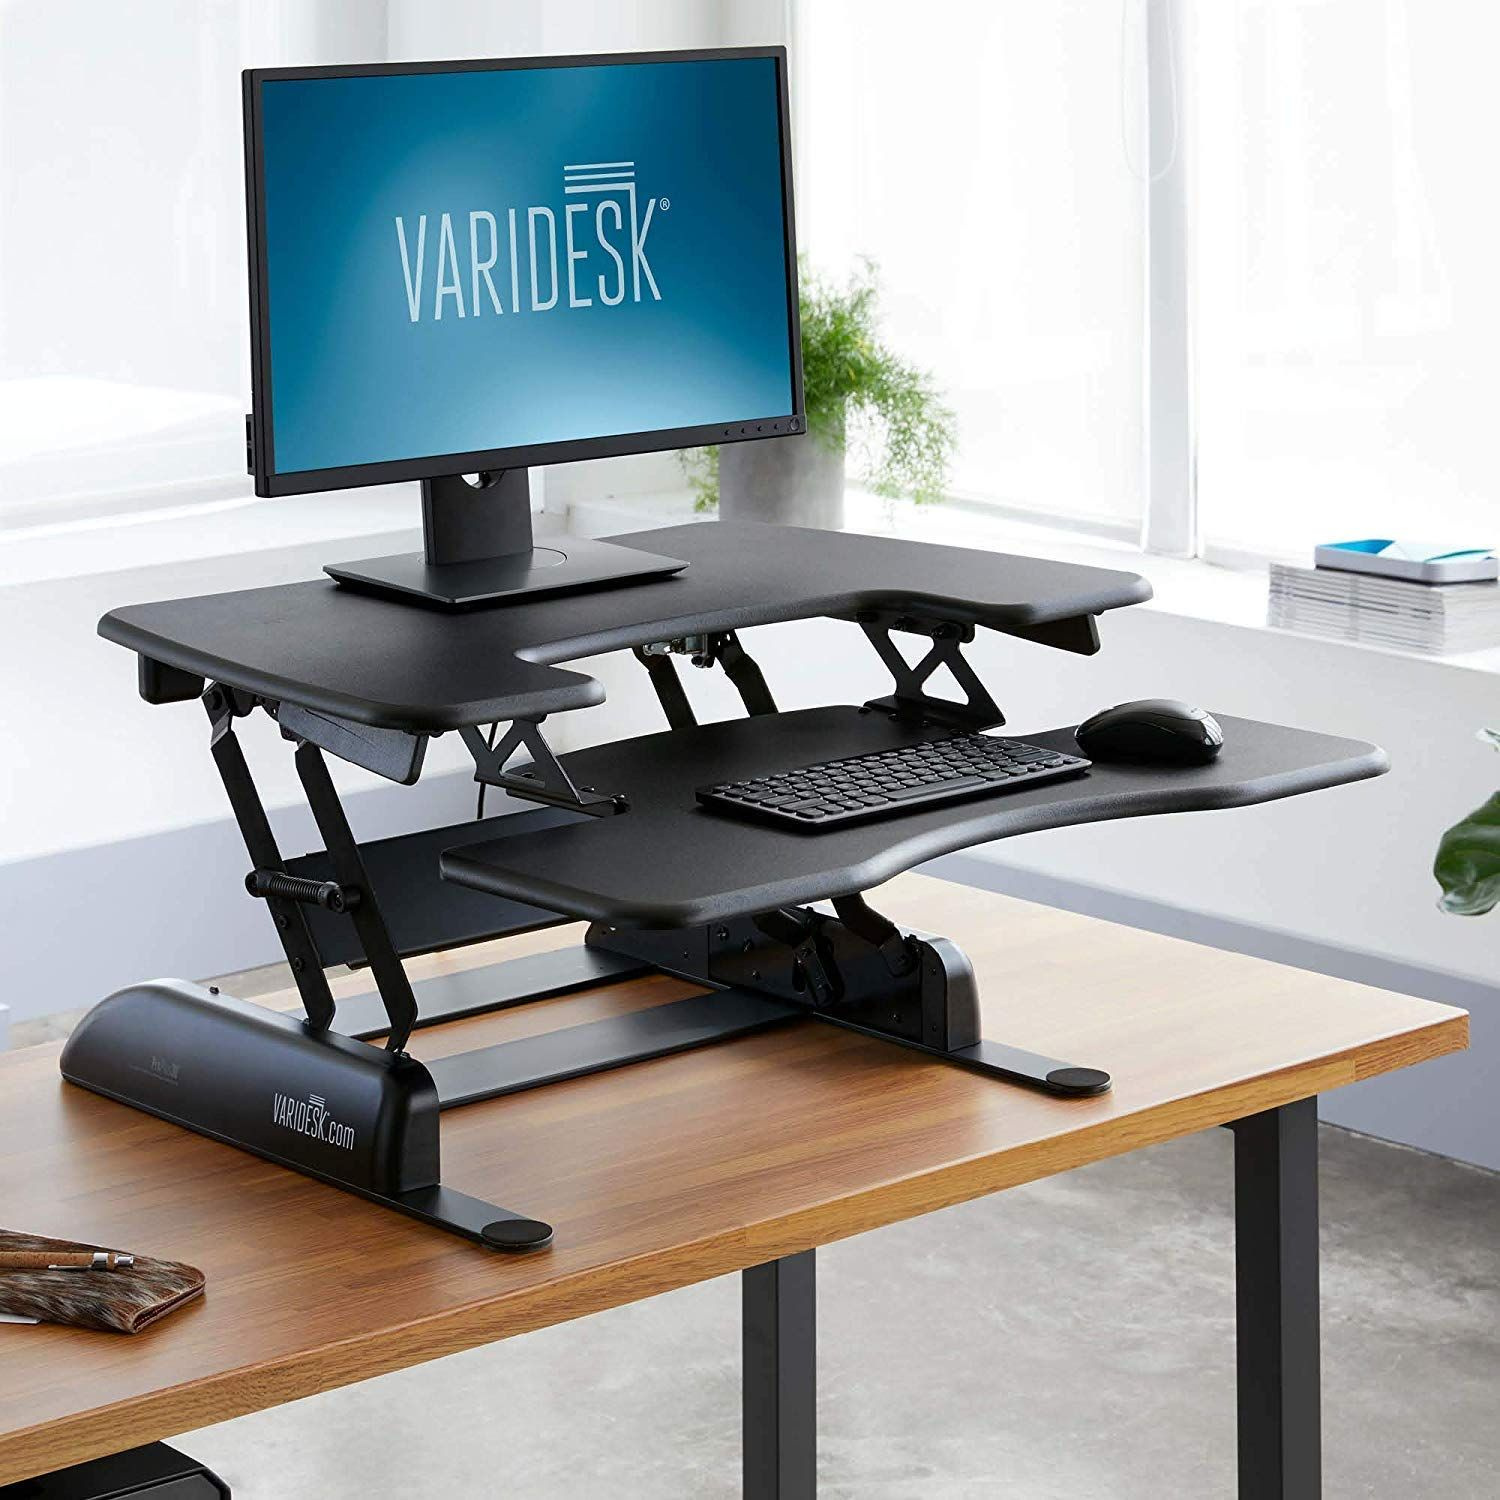 Amazon Com Varidesk Height Adjustable Standing Desk Proplus 30 Office Products Adjustable Height Standing Desk Adjustable Standing Desk Desk